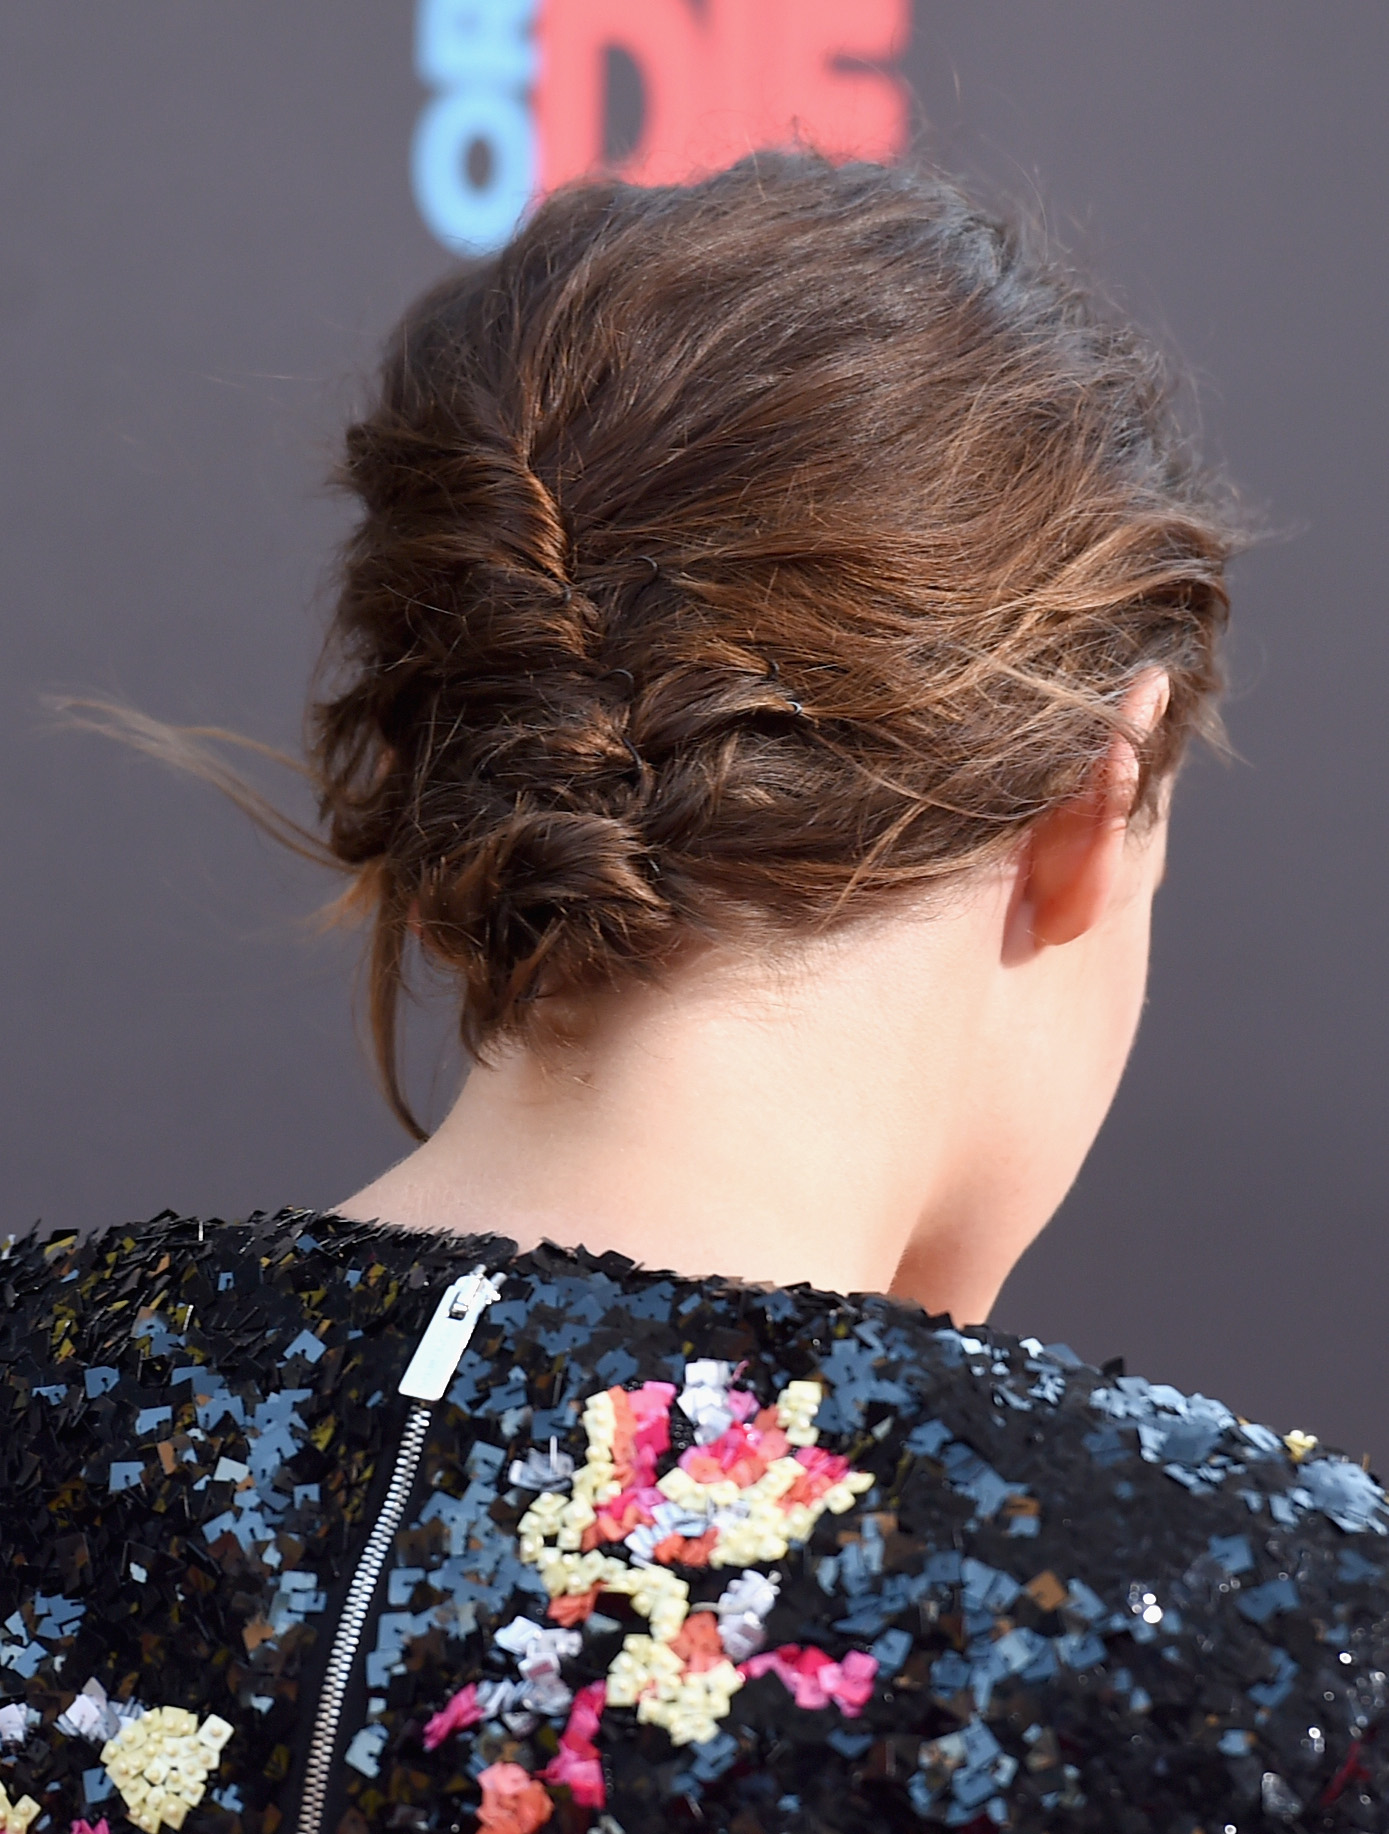 "LOS ANGELES, CA - AUGUST 18:  Actress Kristen Stewart, hair detail, attends the premiere of Lionsgate's ""American Ultra"" at Ace Theater Downtown LA on August 18, 2015 in Los Angeles, California.  (Photo by Jason Merritt/Getty Images)"